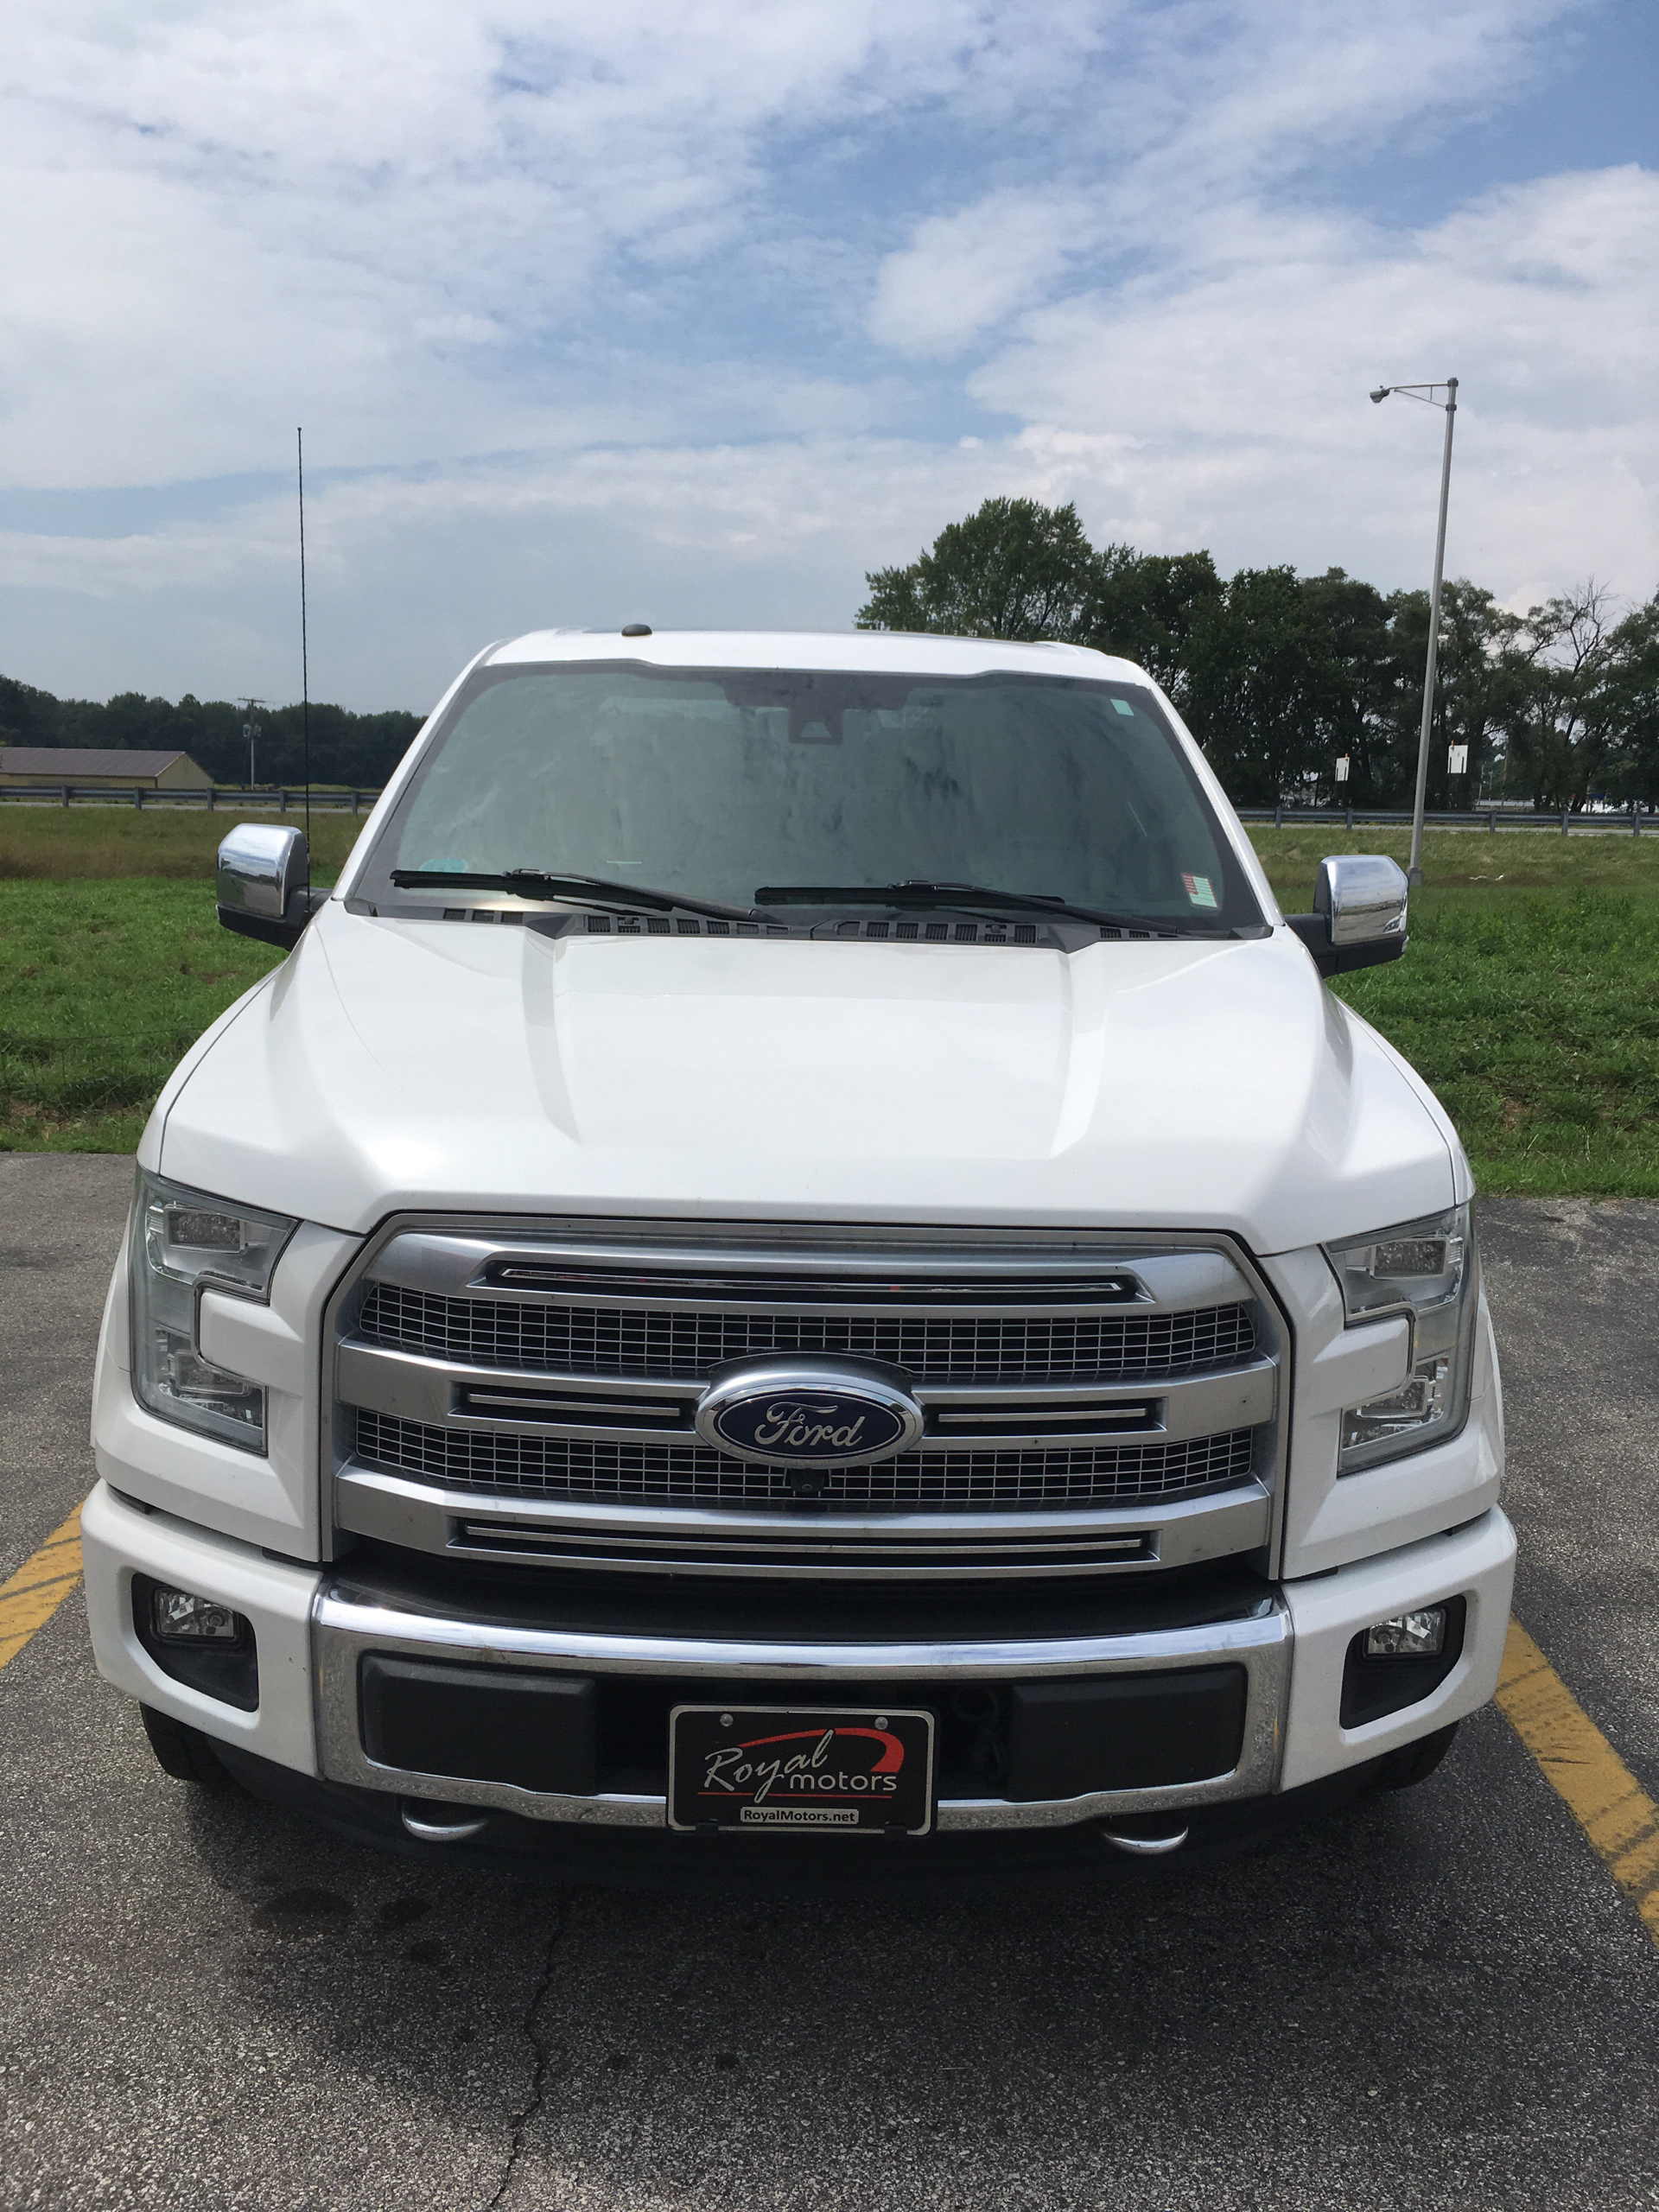 2016 ford ford f 150 crew cab 4wd in kendallville indiana